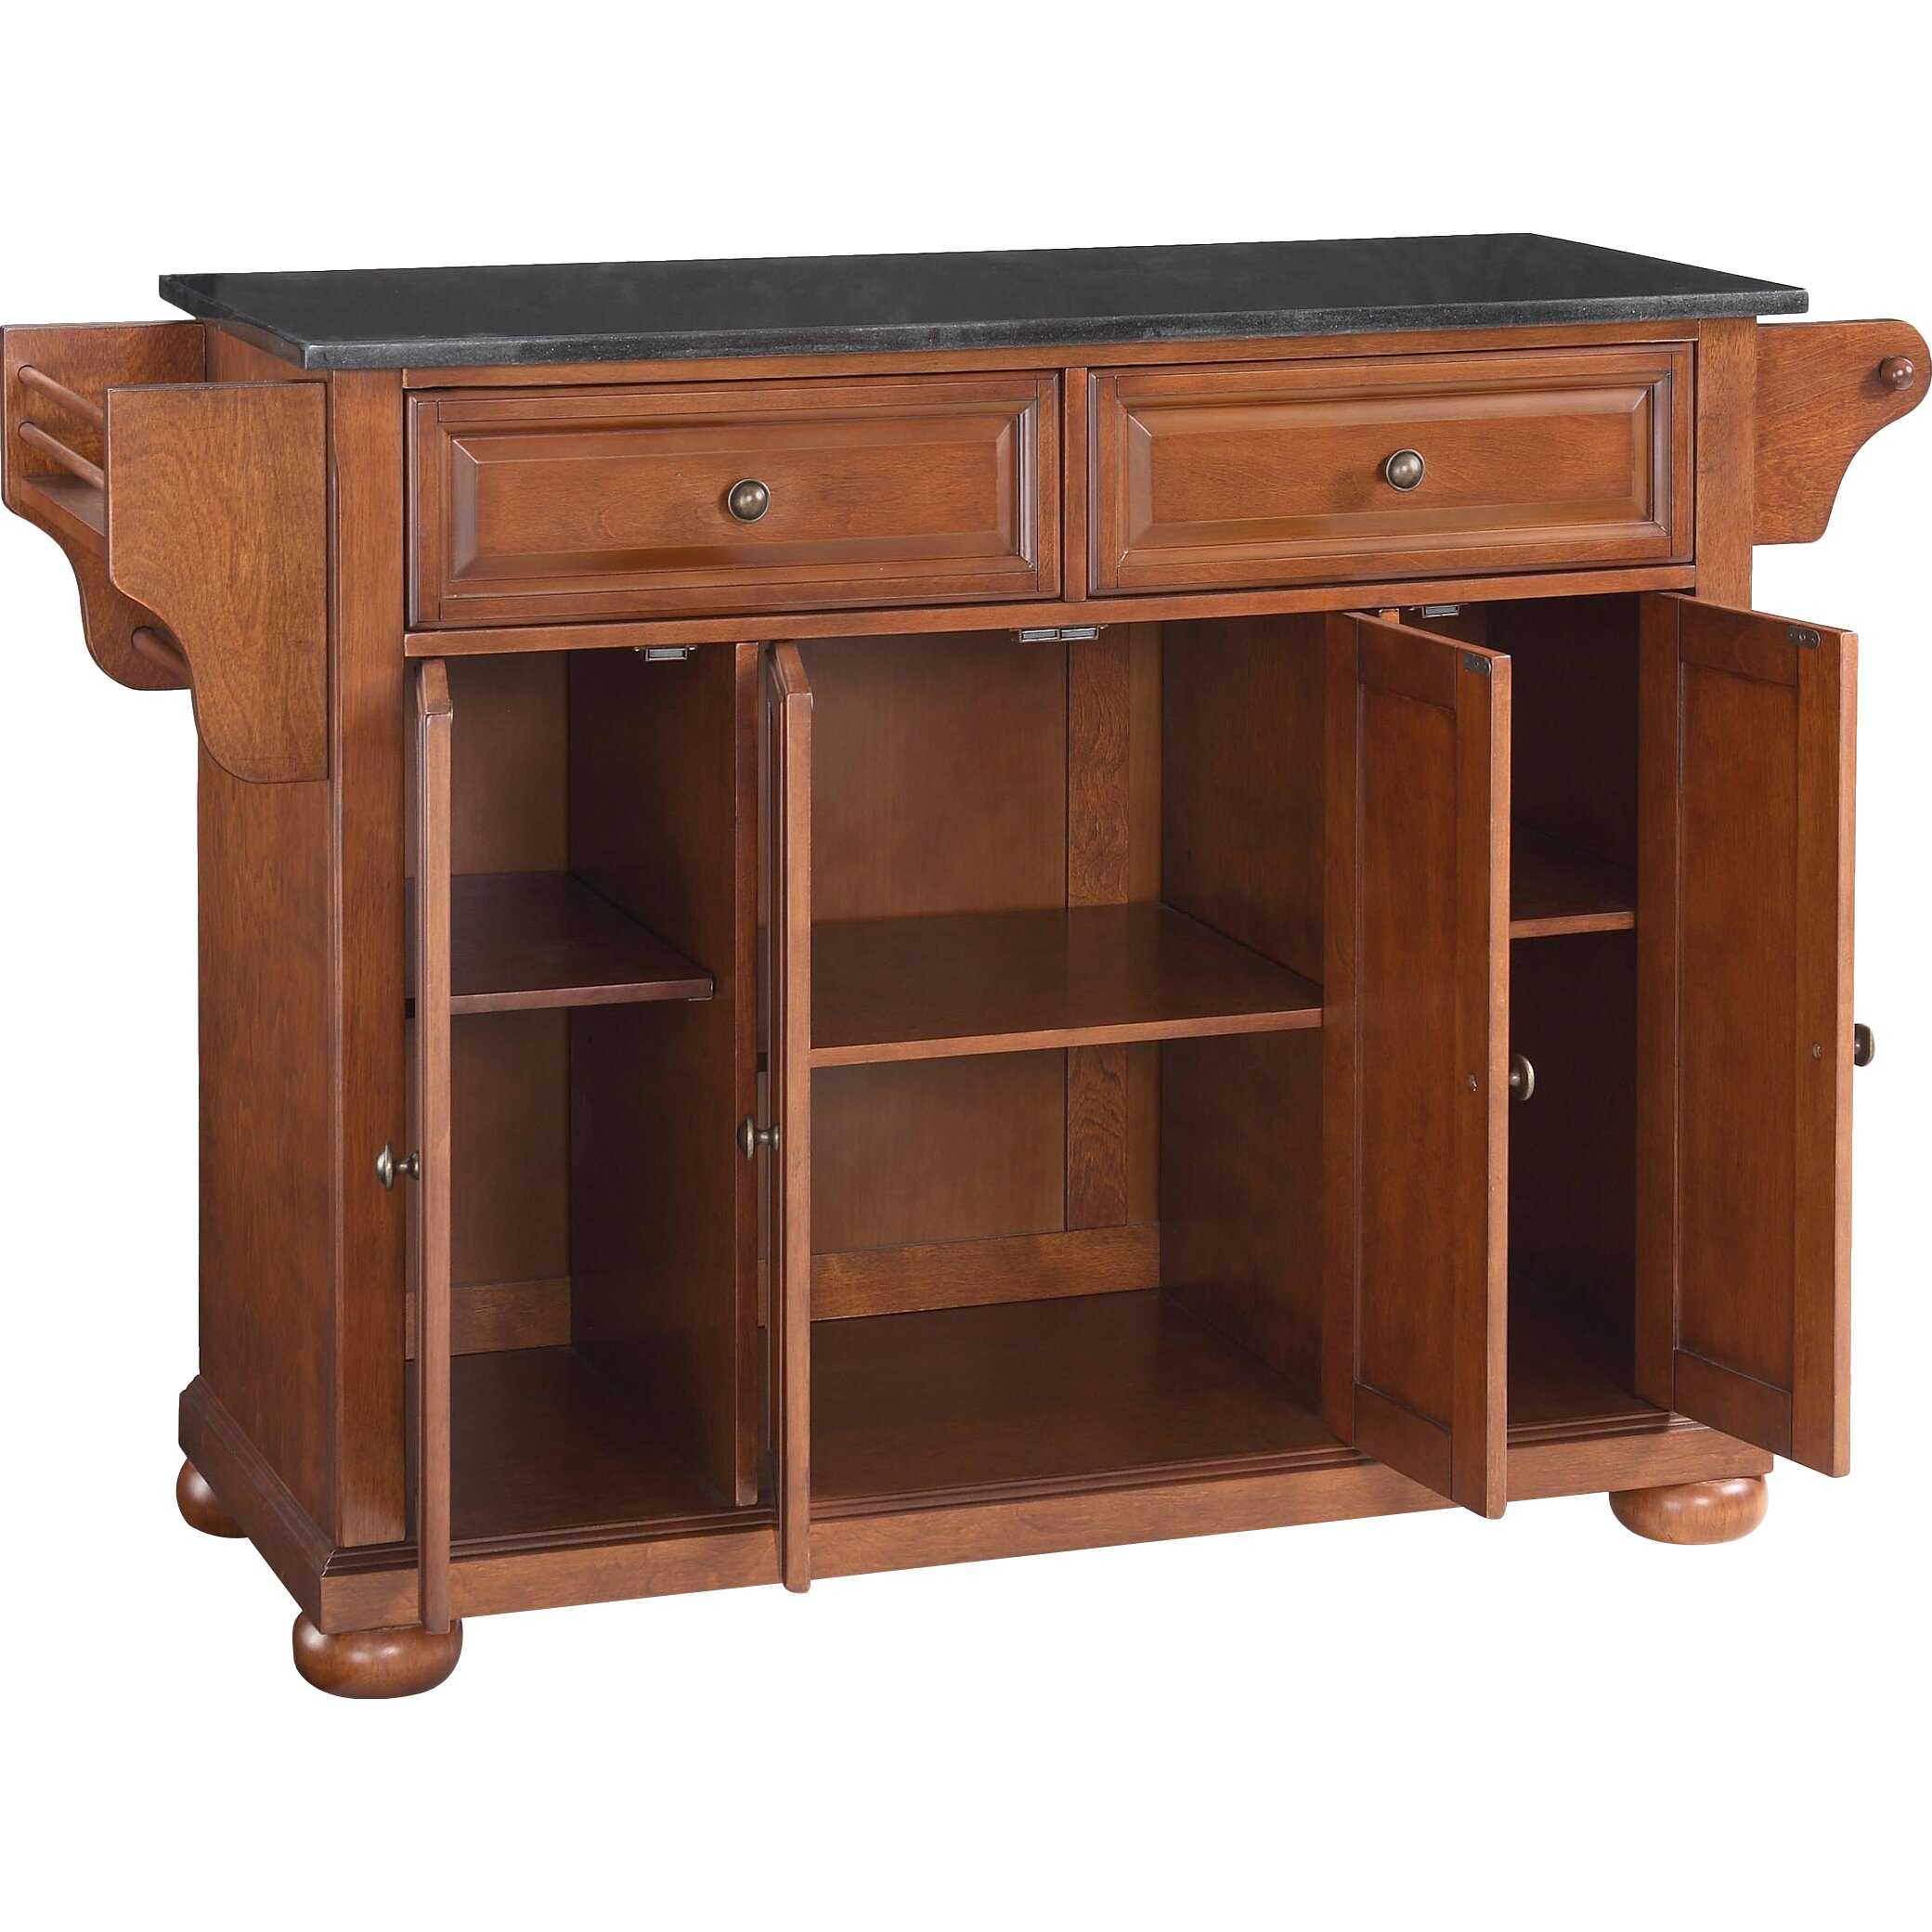 Granite Top Kitchen Island Table Darby Home Co Pottstown Kitchen Island With Granite Top Reviews